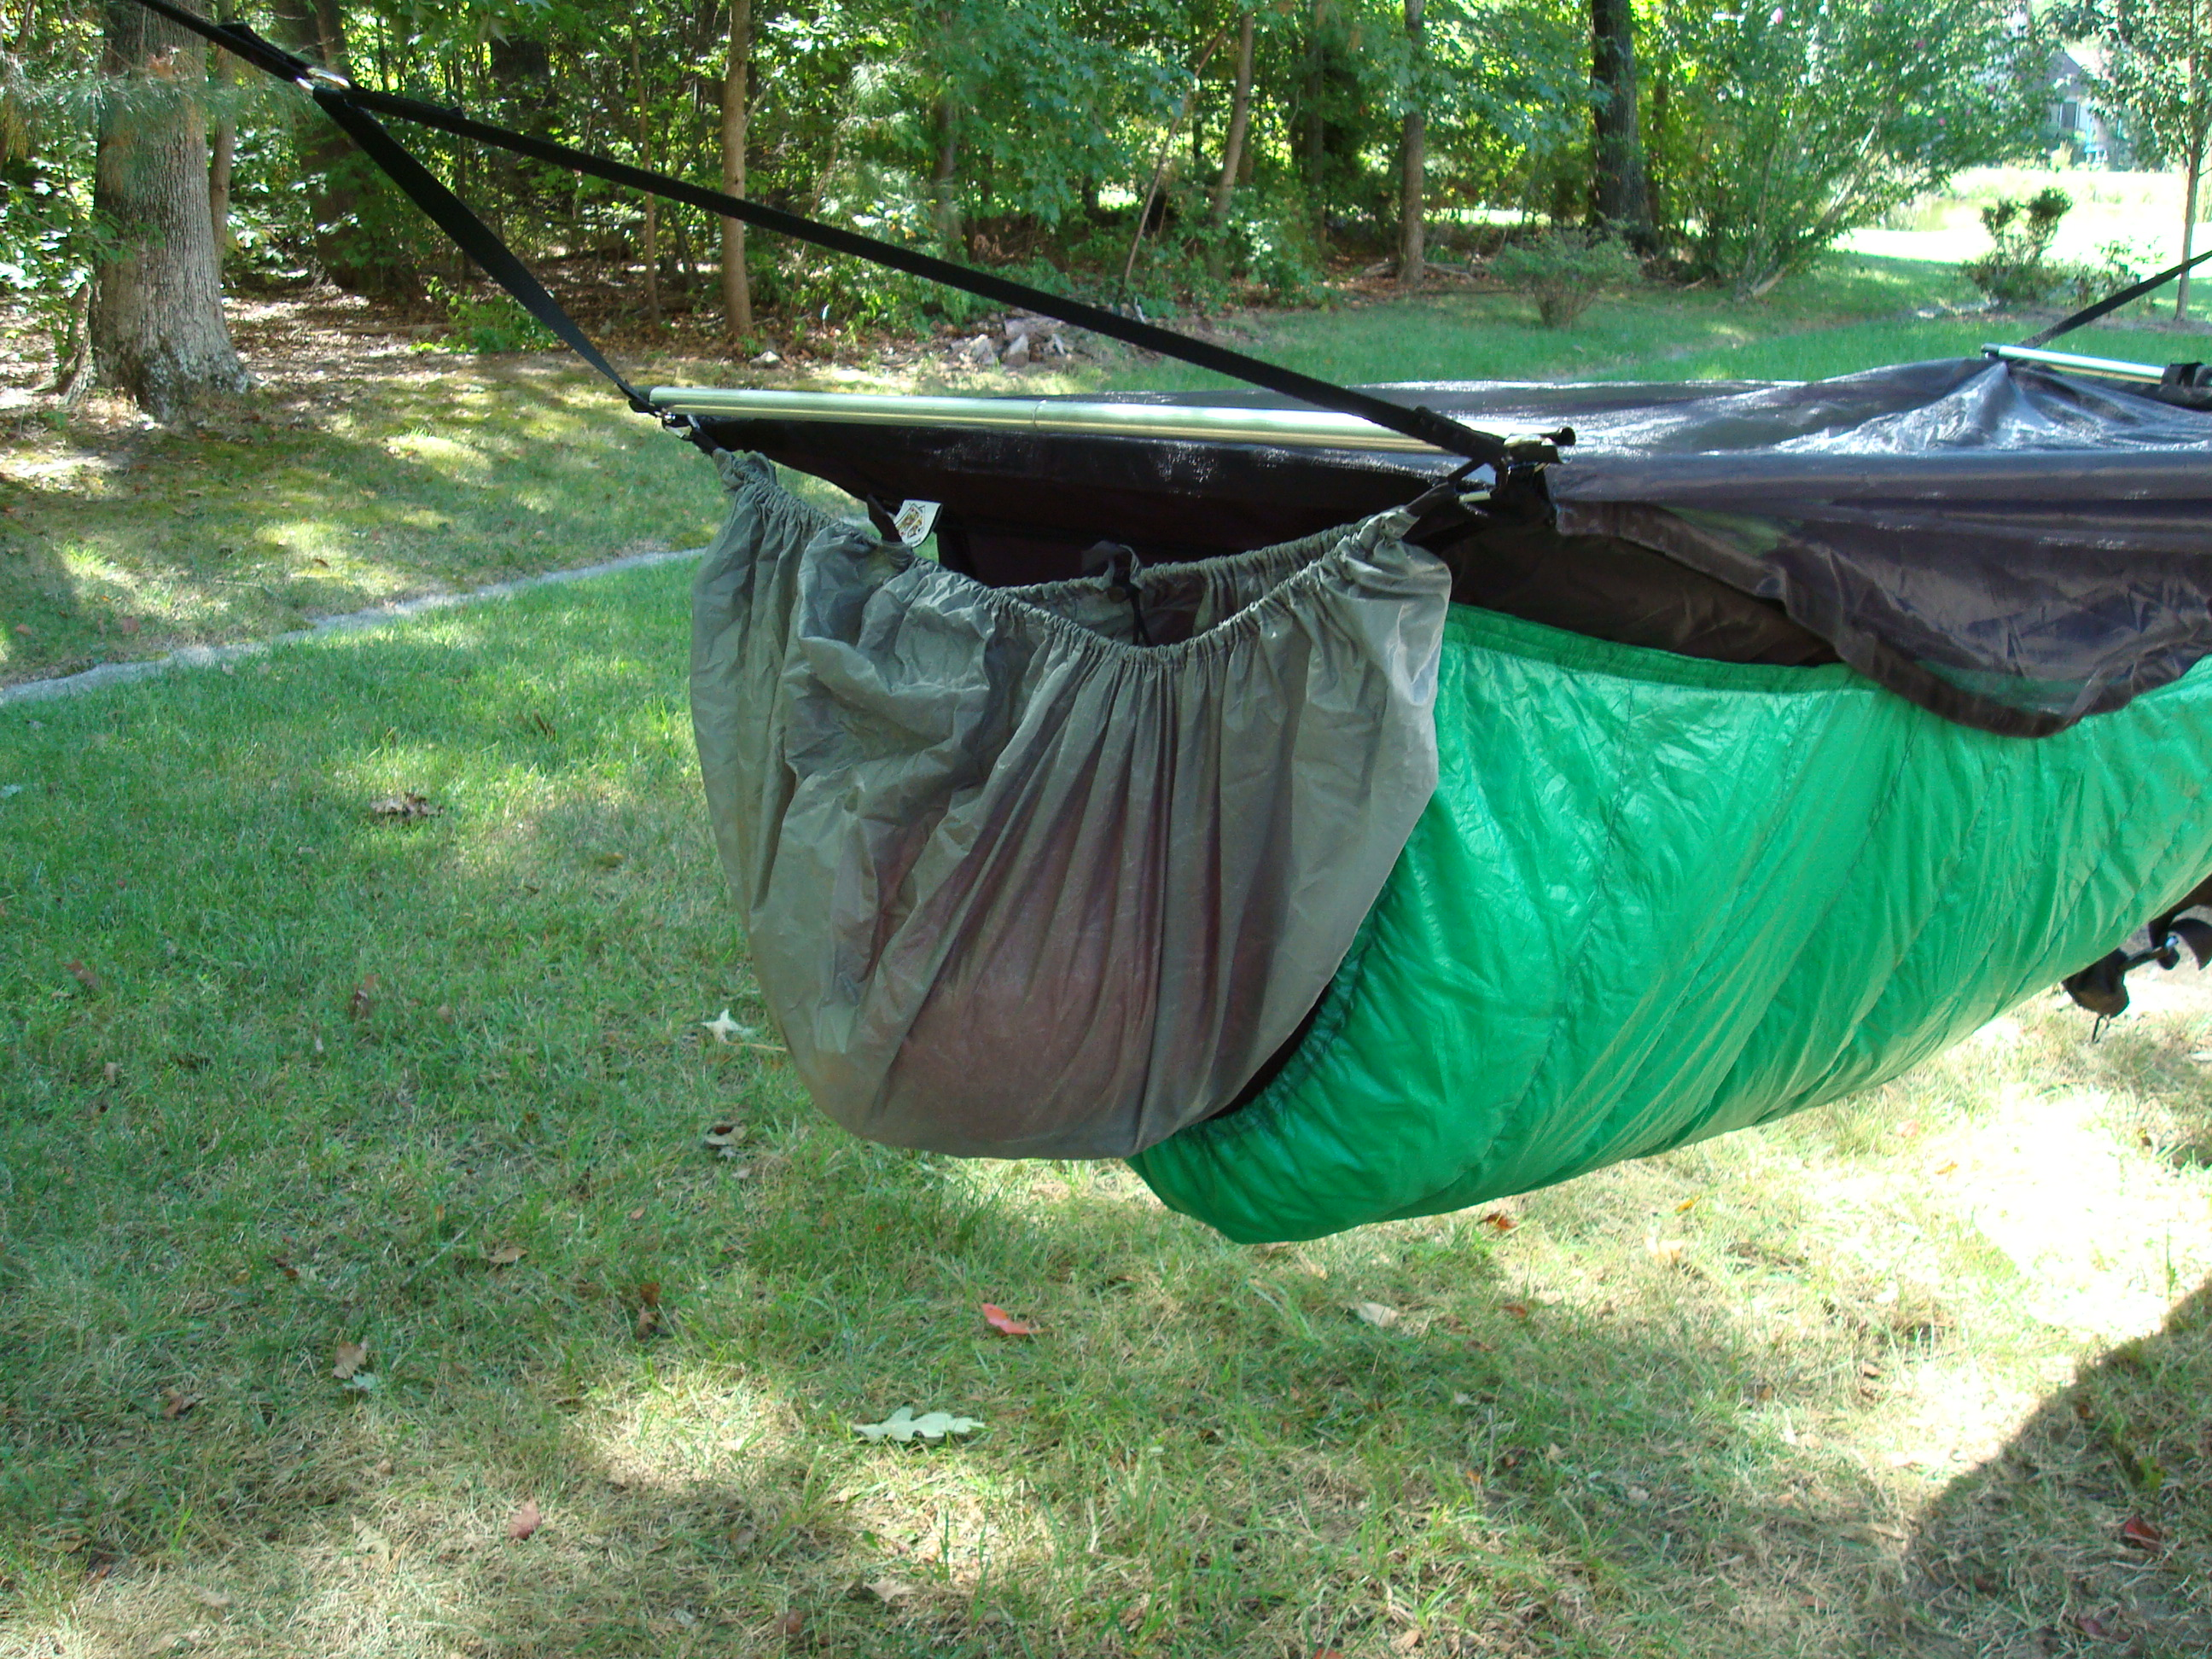 jeff u0027s gear hammock pack cover on jrb bmbh jeff u0027s gear hammock pack cover on jrb bmbh   hammock forums gallery  rh   hammockforums